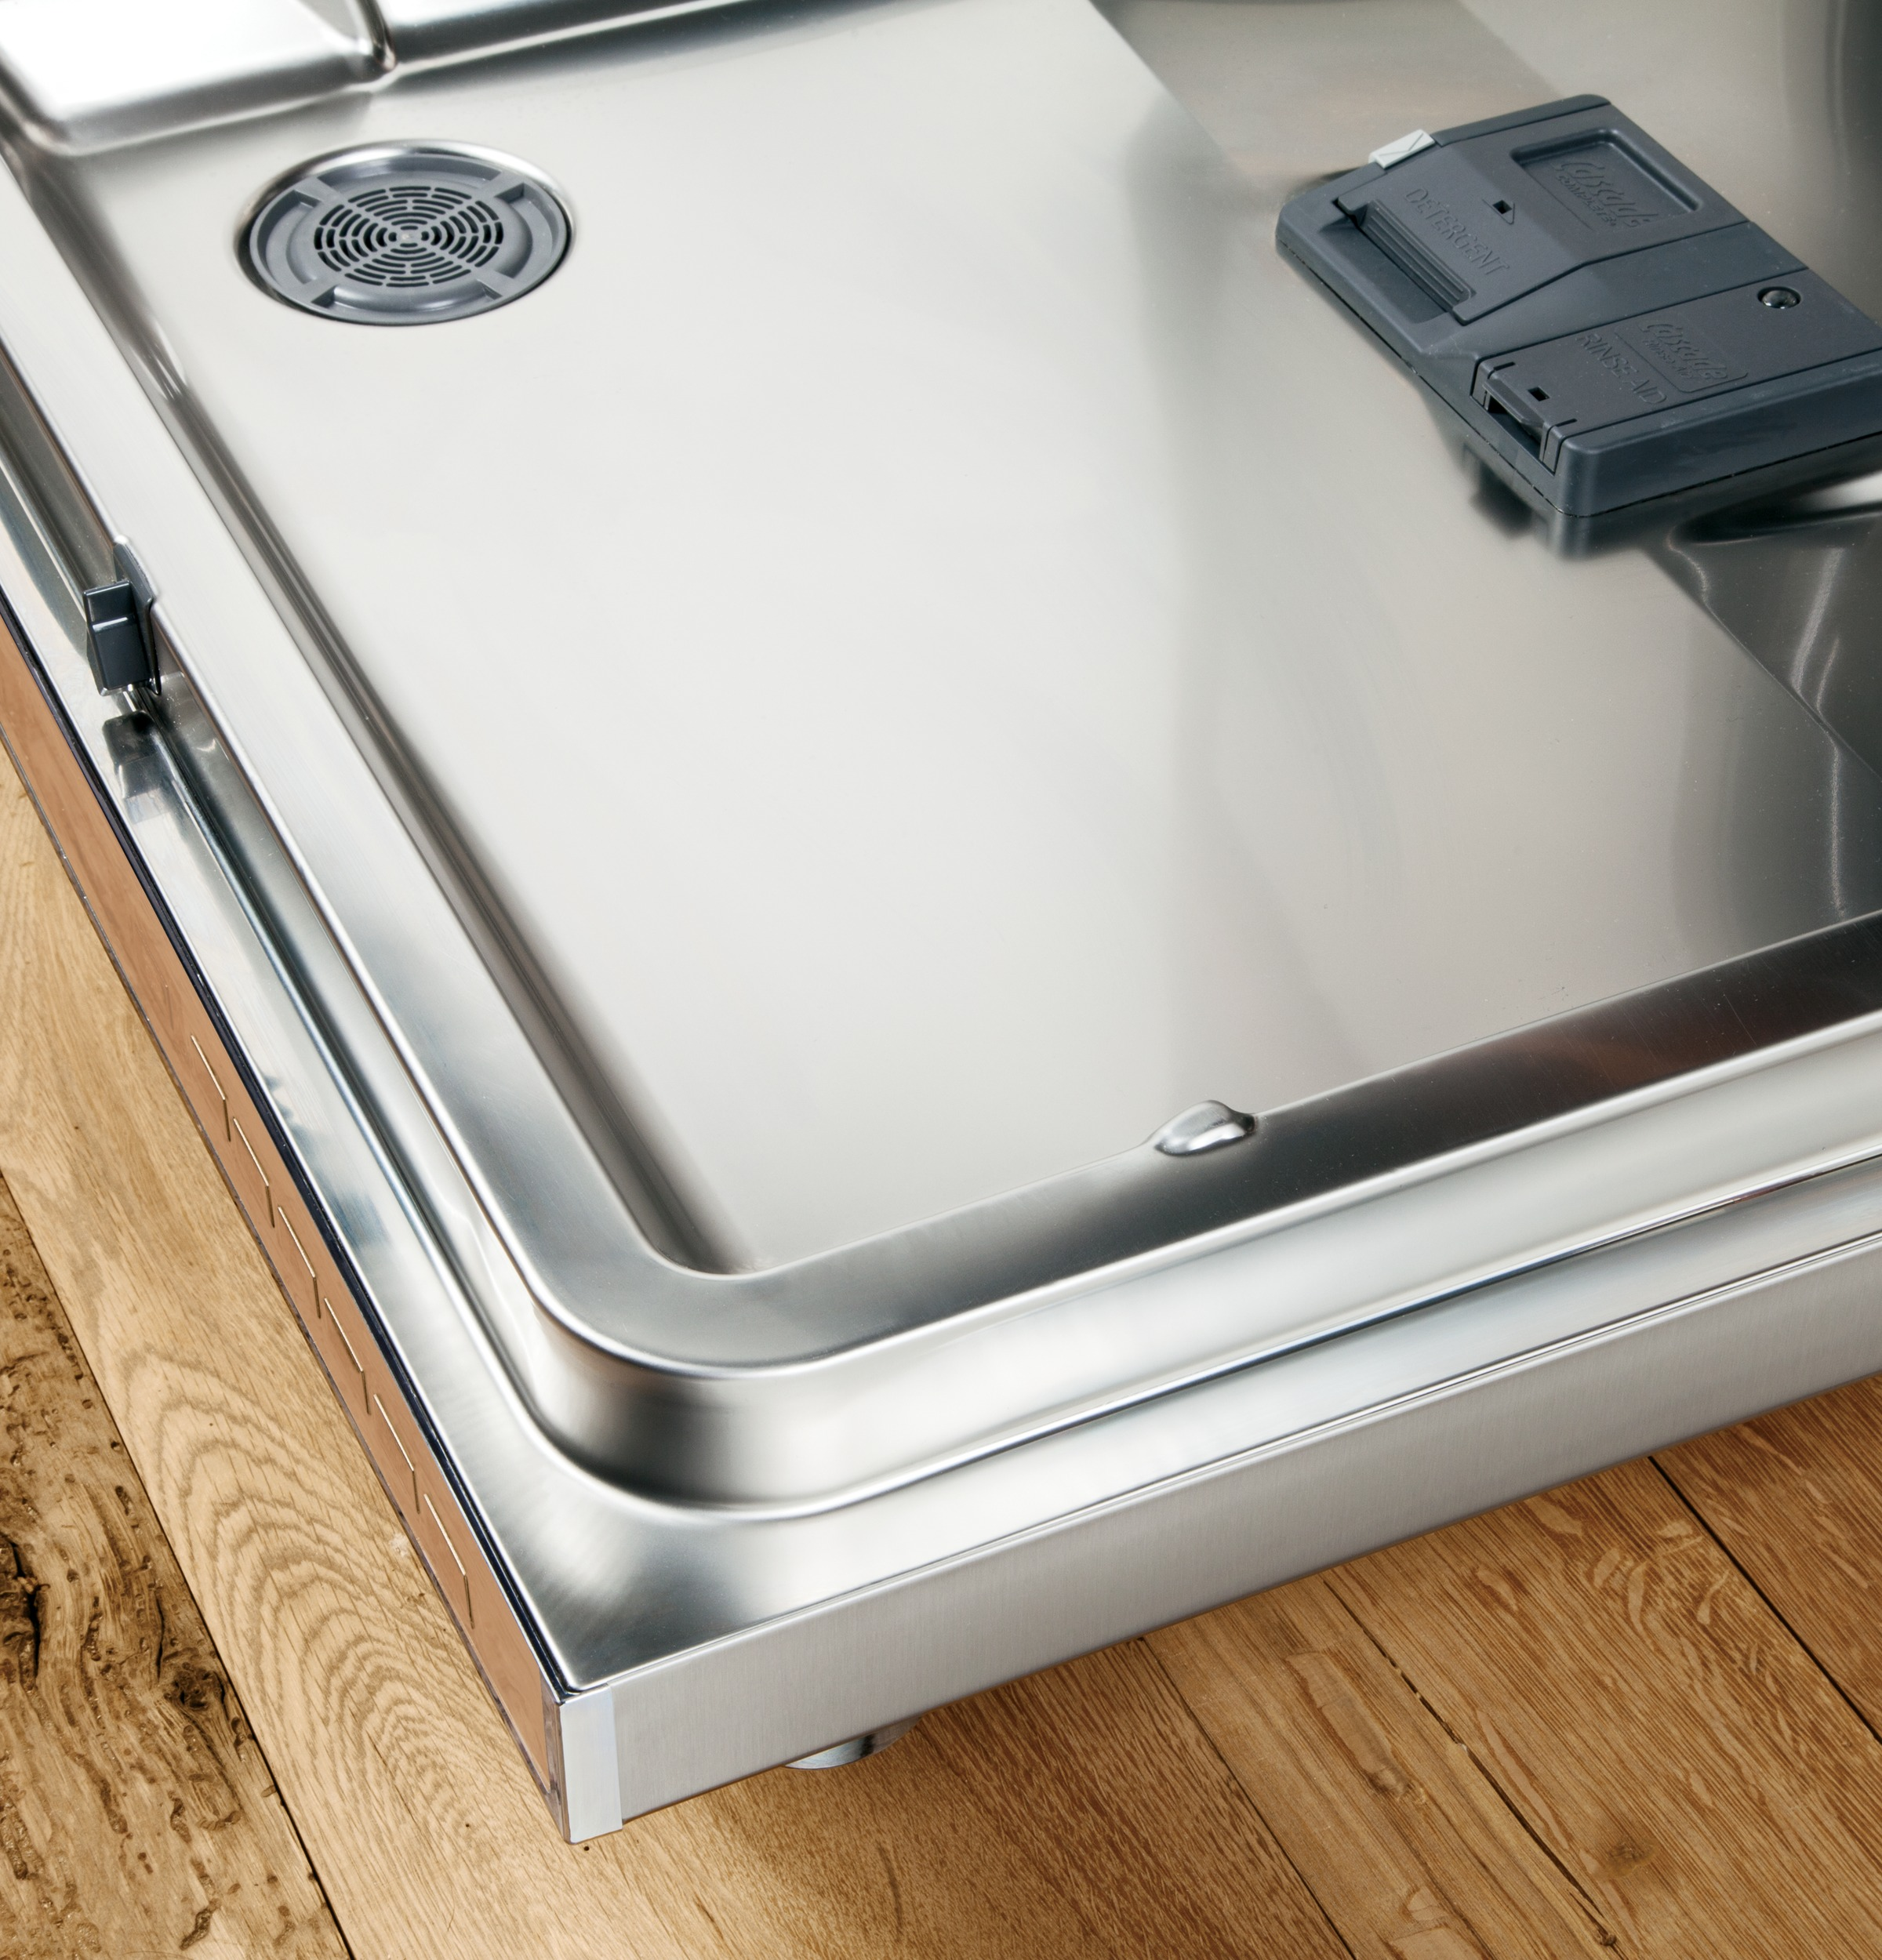 Model: GDT655SBLTS | GE GE® Stainless Steel Interior Dishwasher with Hidden Controls